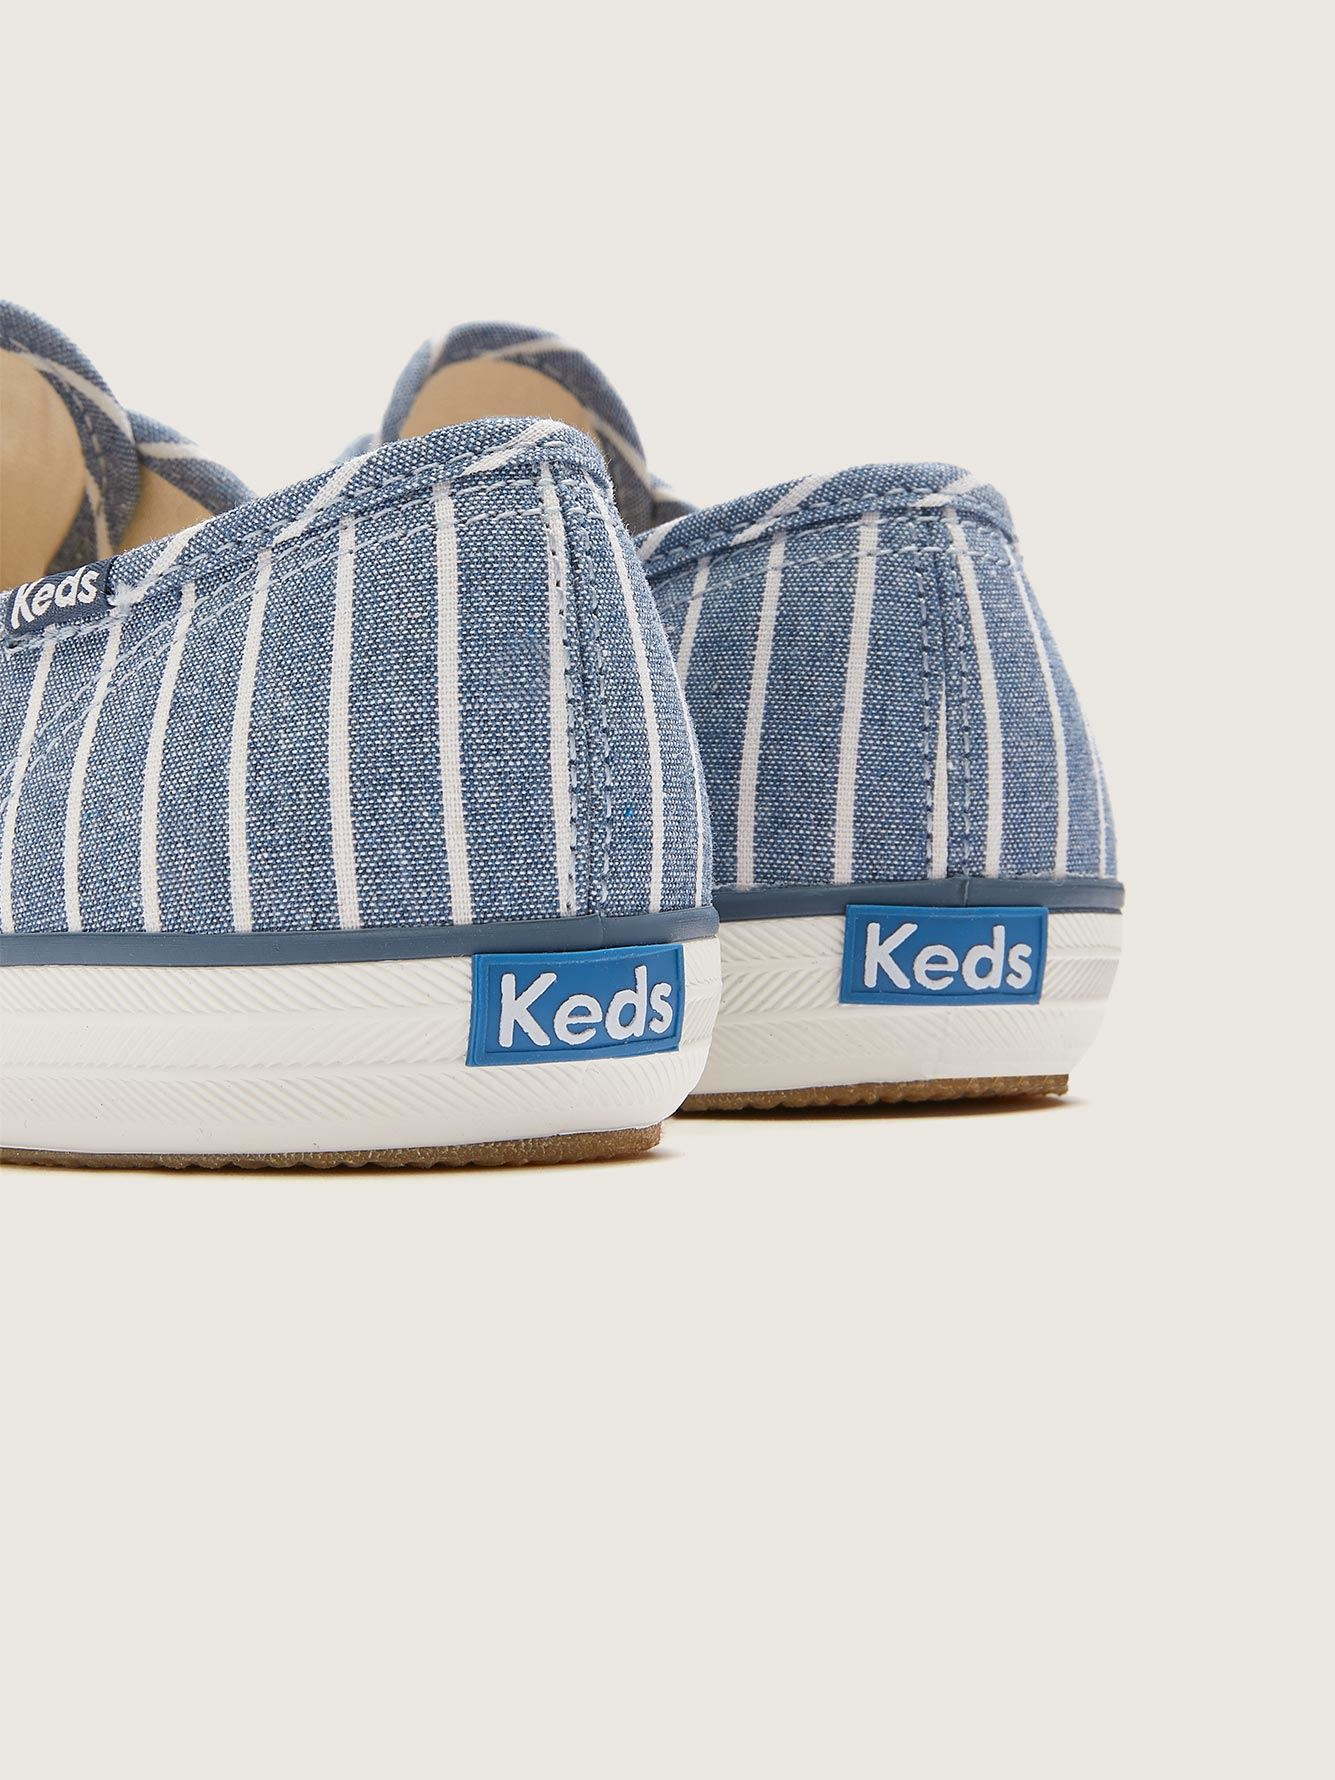 Wide Champion Breton Stripe Canvas Sneaker - Keds